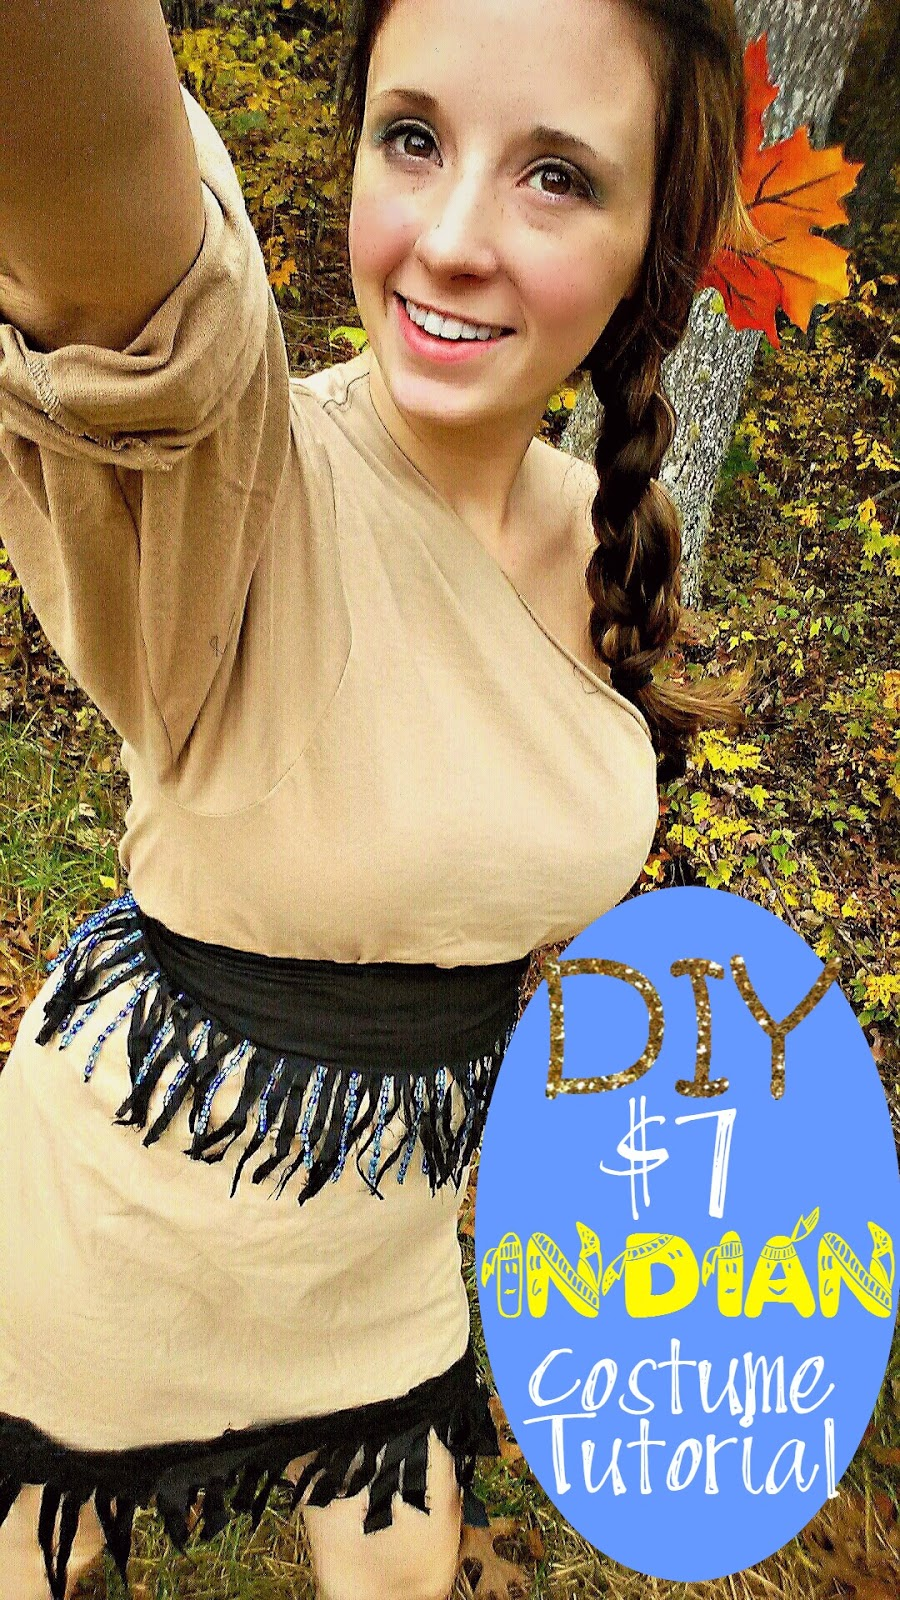 DIY $7 Indian Costume Tutorial  sc 1 st  Diary of a WAHM & Diary of a WAHM: DIY $7 Indian Costume Tutorial